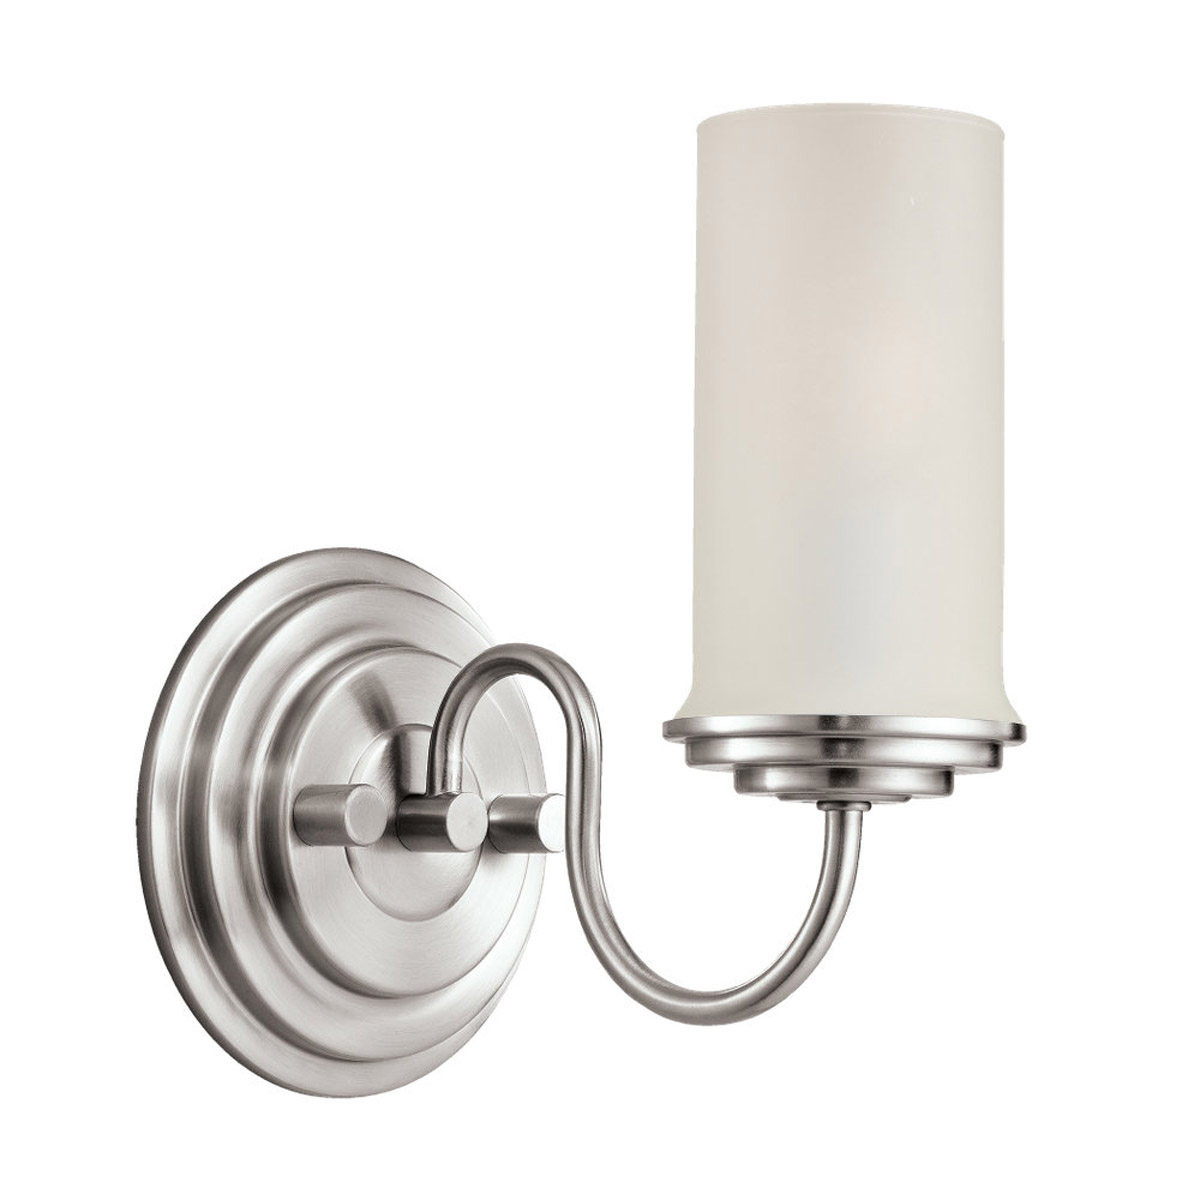 Sea Gull Lighting Wellington 1 Light Wall / Bath / Vanity in Brushed Nickel 44655-962